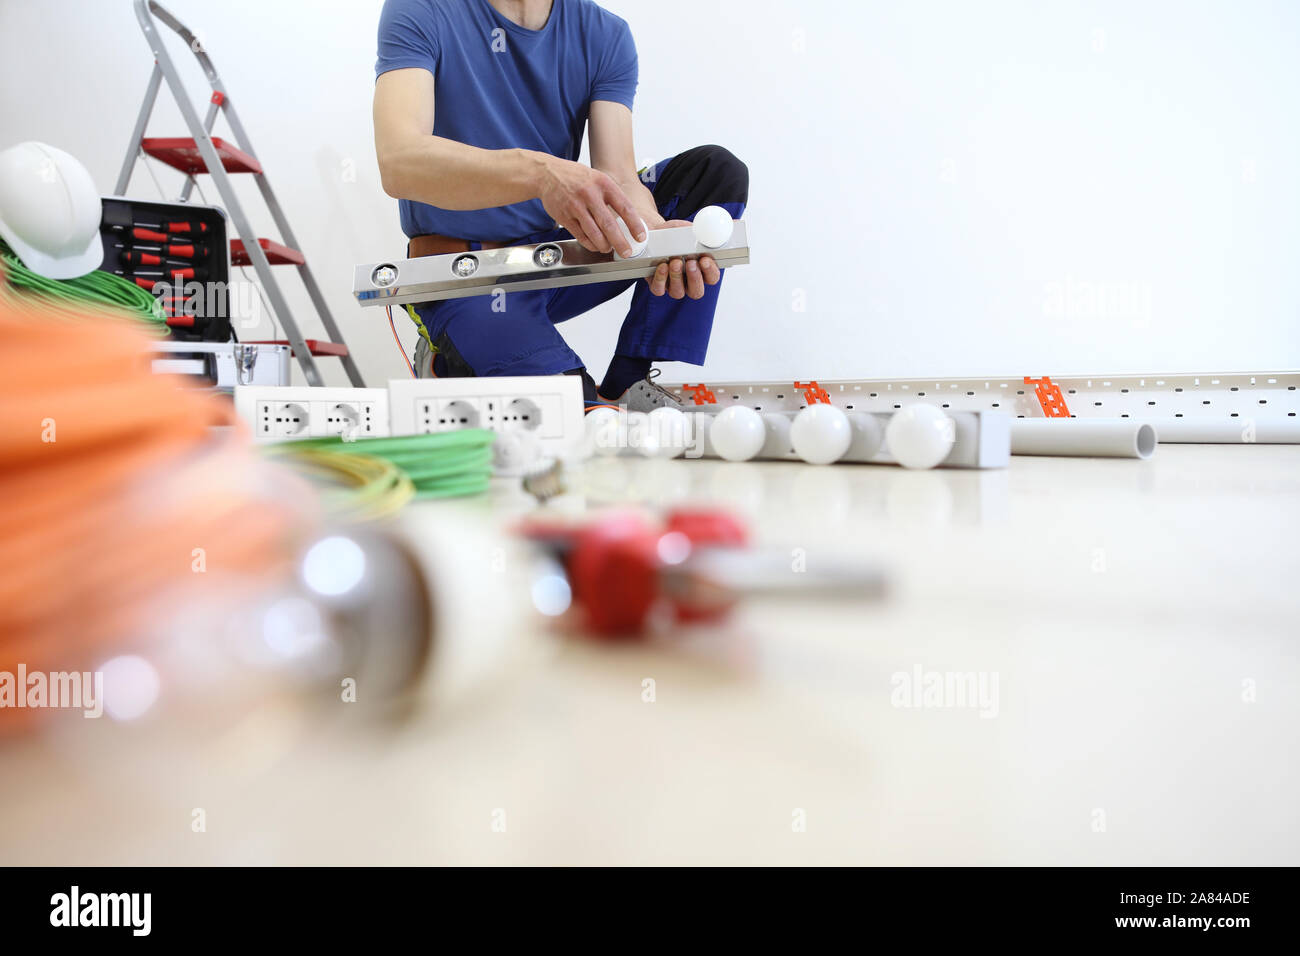 Electrician At Work With Tools Puts The Bulbs On A Lamp At Home Electric Circuits Electrical Wiring Stock Photo Alamy